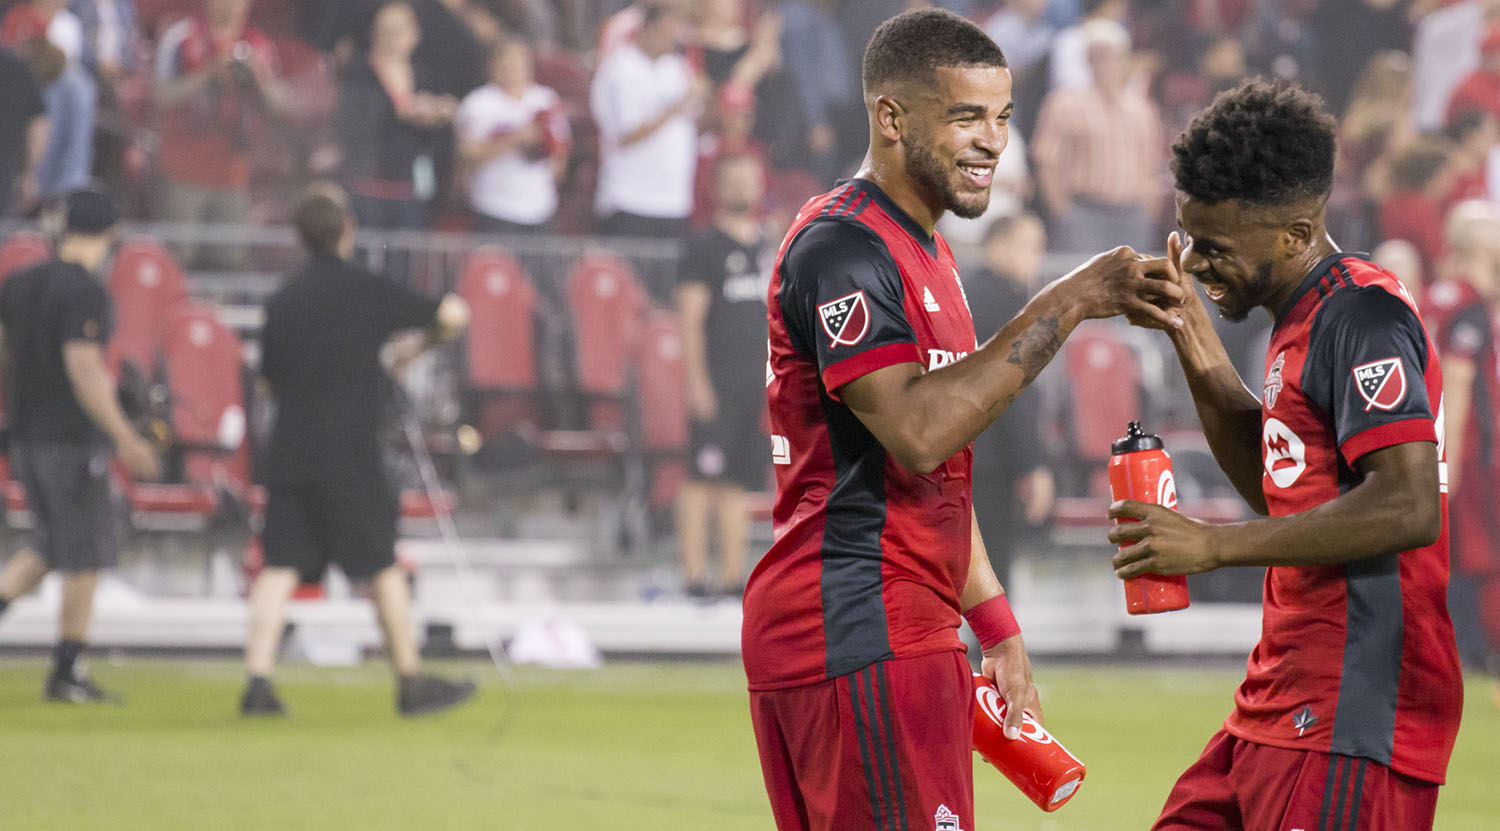 Jordan Hamilton and Raheem Edwards do a little finger thing in celebration of a 2-0 win over DC United. Image by Dennis Marciniak of denMAR Media.